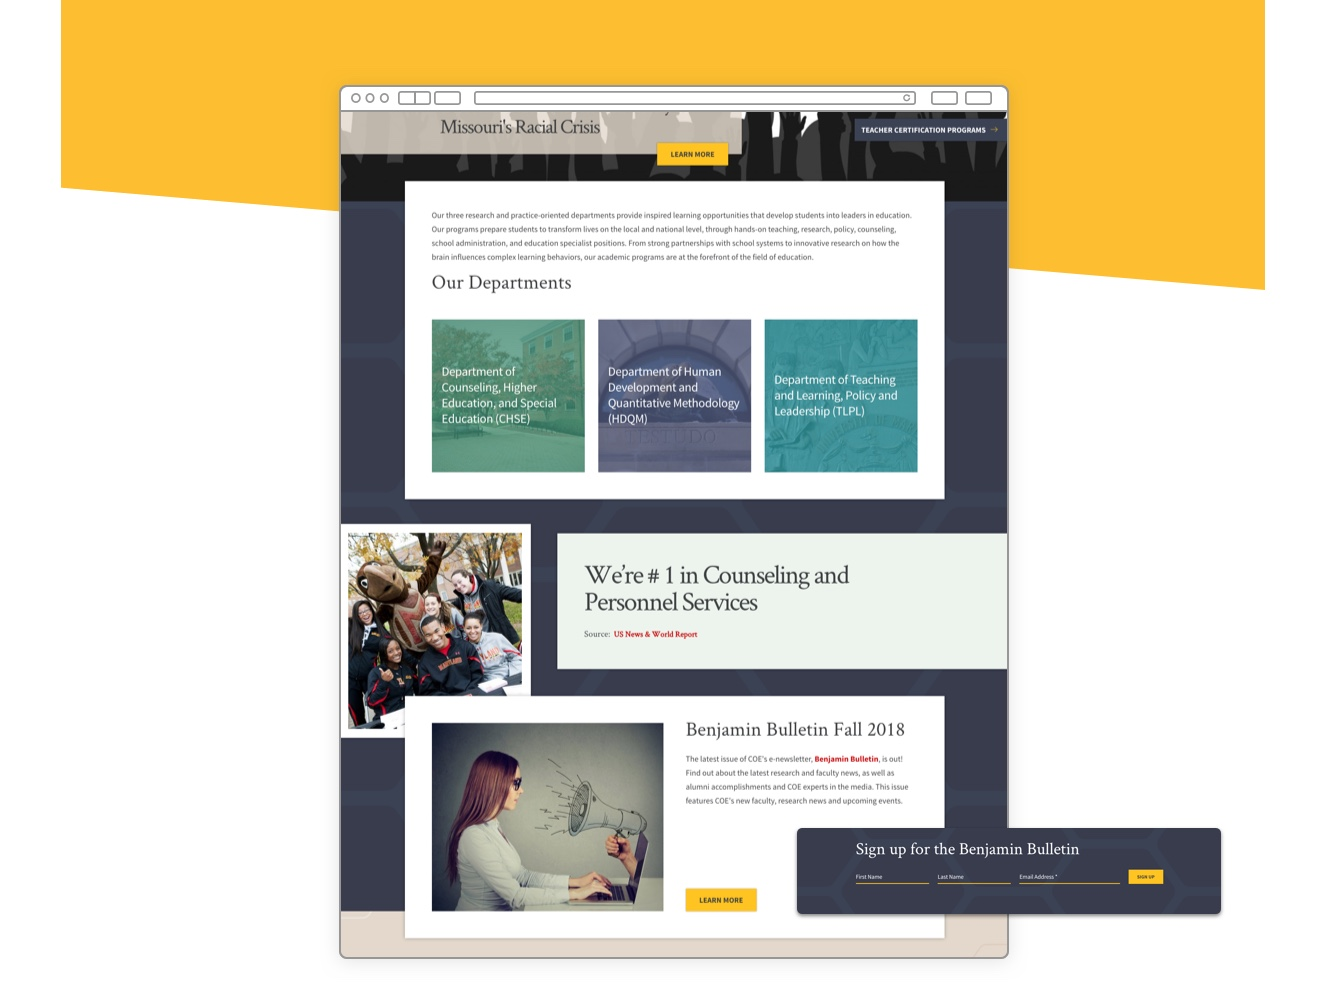 UMD College of education homepage featuring our departments and Benjamin bulletin sections.